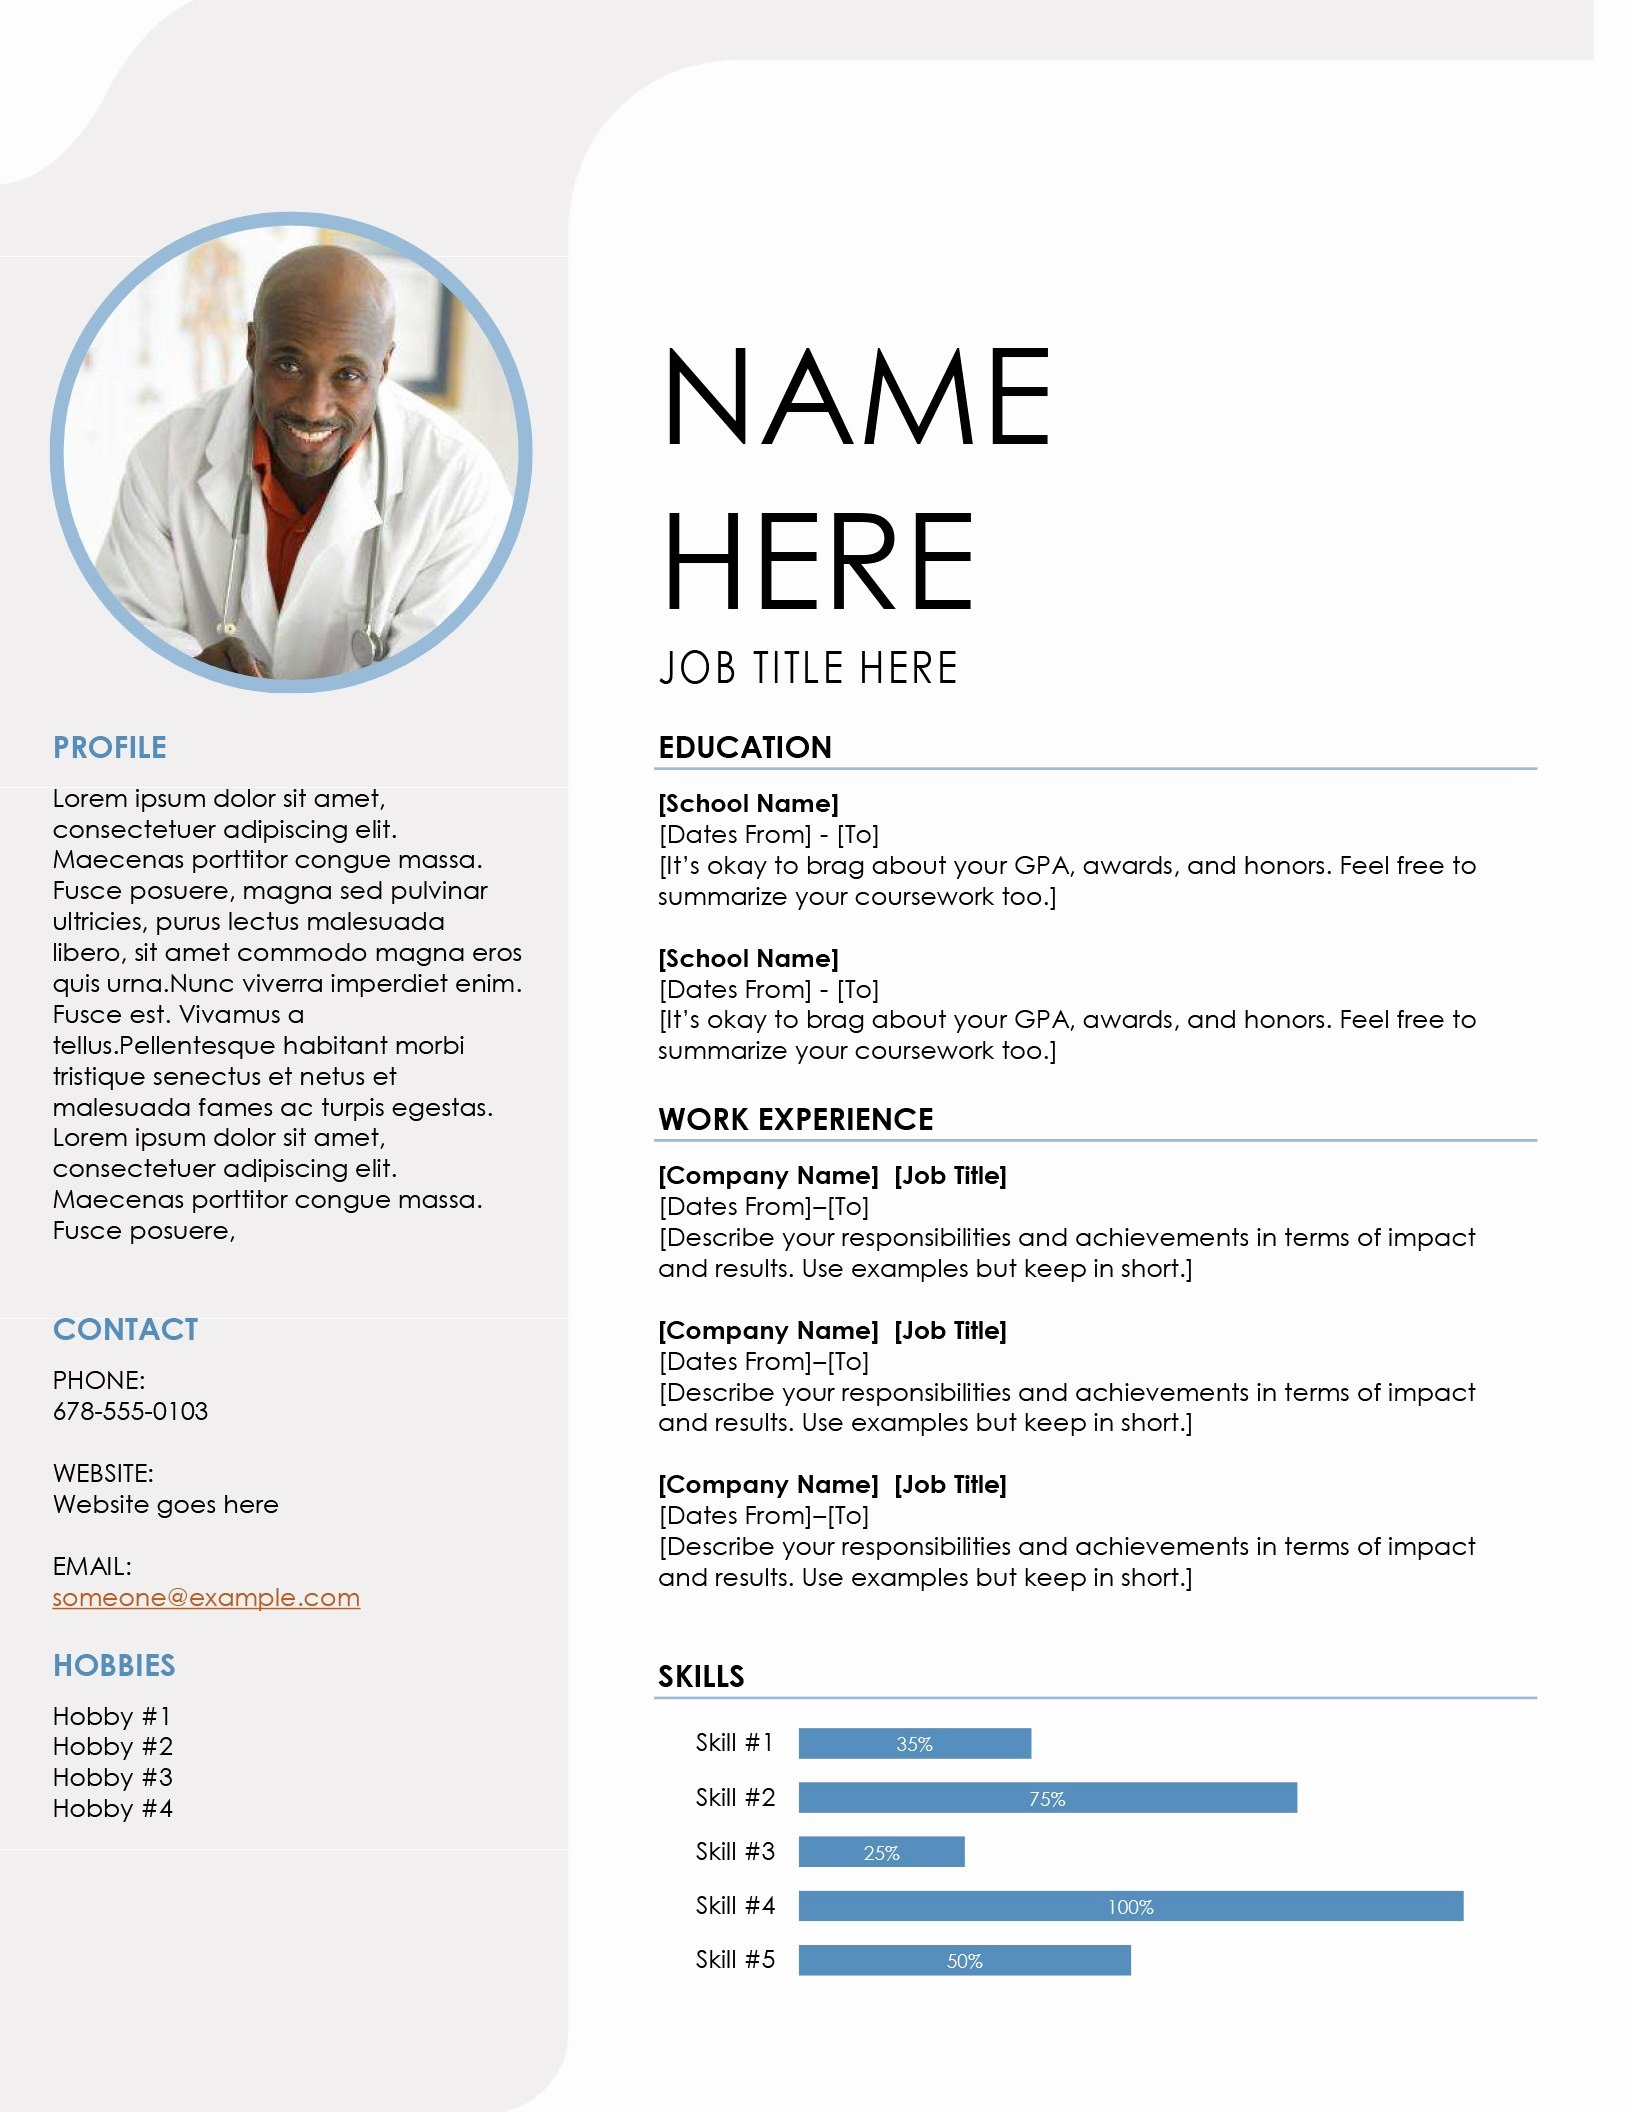 Free Ms Office Resume Templates Beautiful Resumes and Cover Letters Fice